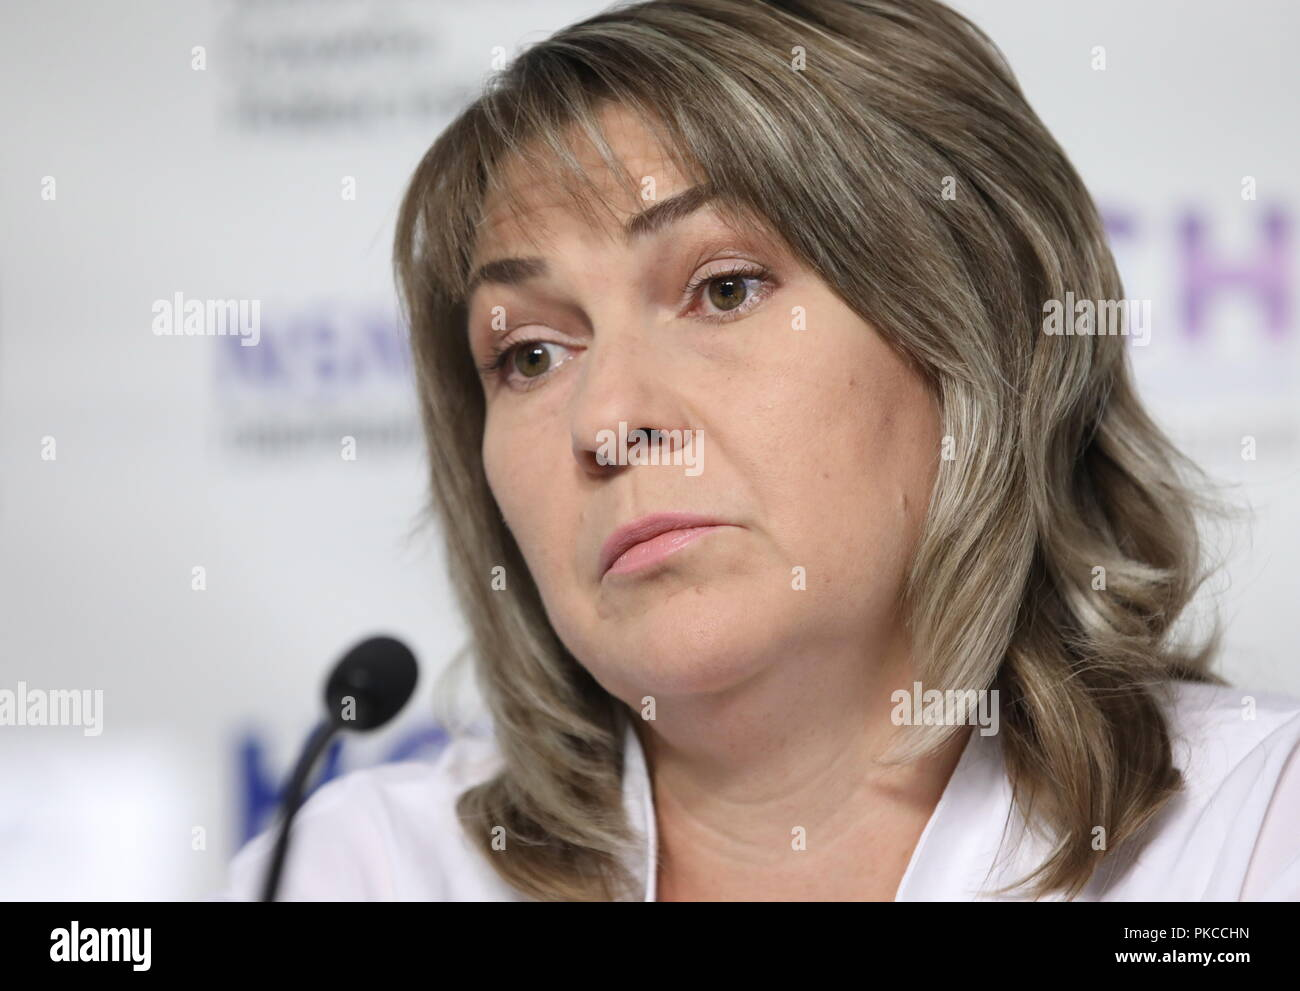 Wife of Anton Makarsky told about her burden to alcohol 17.05.2013 93